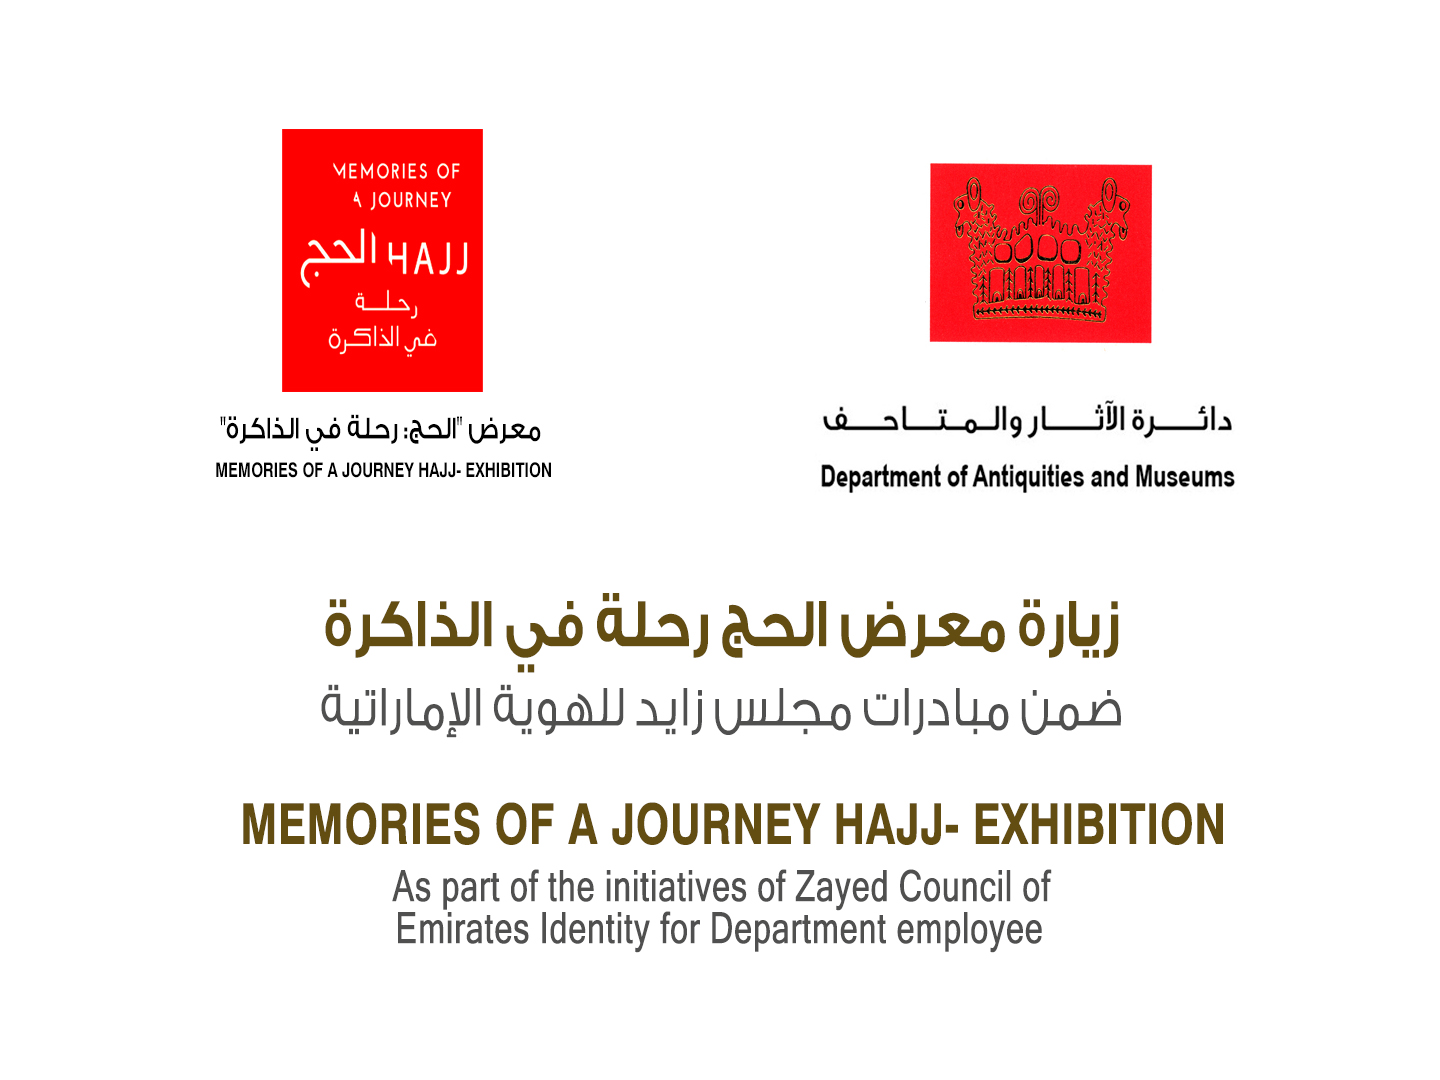 MEMORIES OF A JOURNEY HAJJ_EXHIBITION VISIT